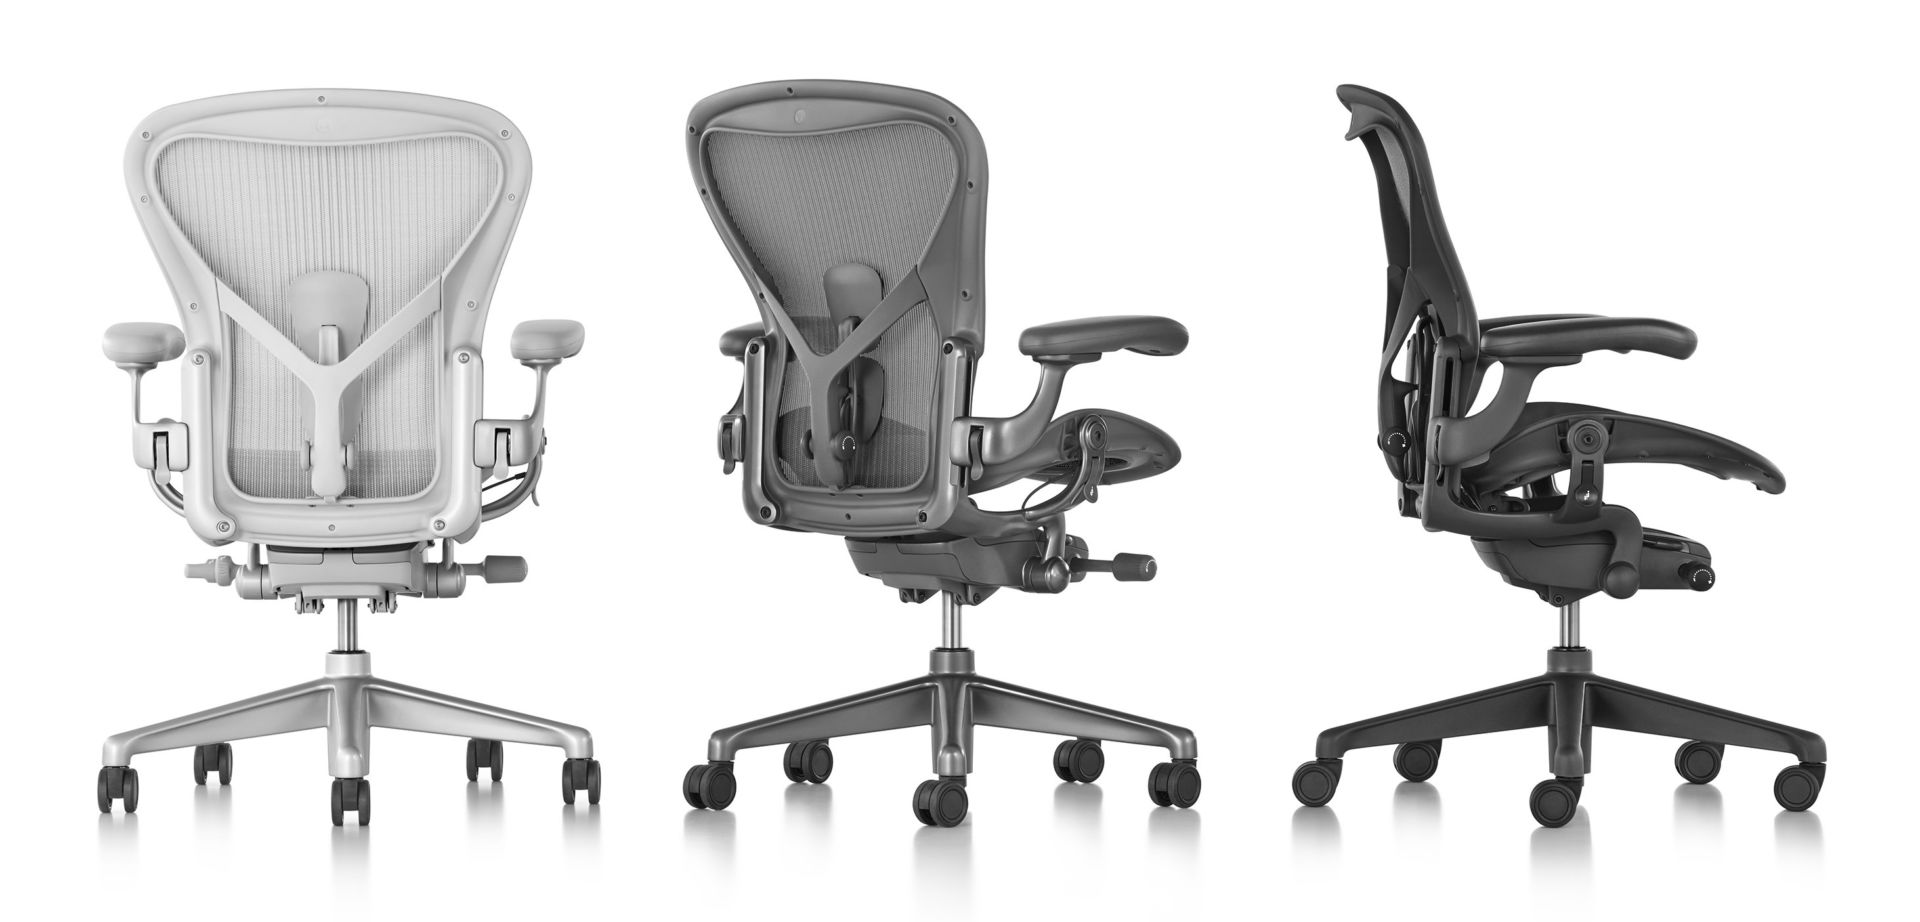 Aaron Chair Remastered Aeron Chair Review Herman Miller Aeron Chair